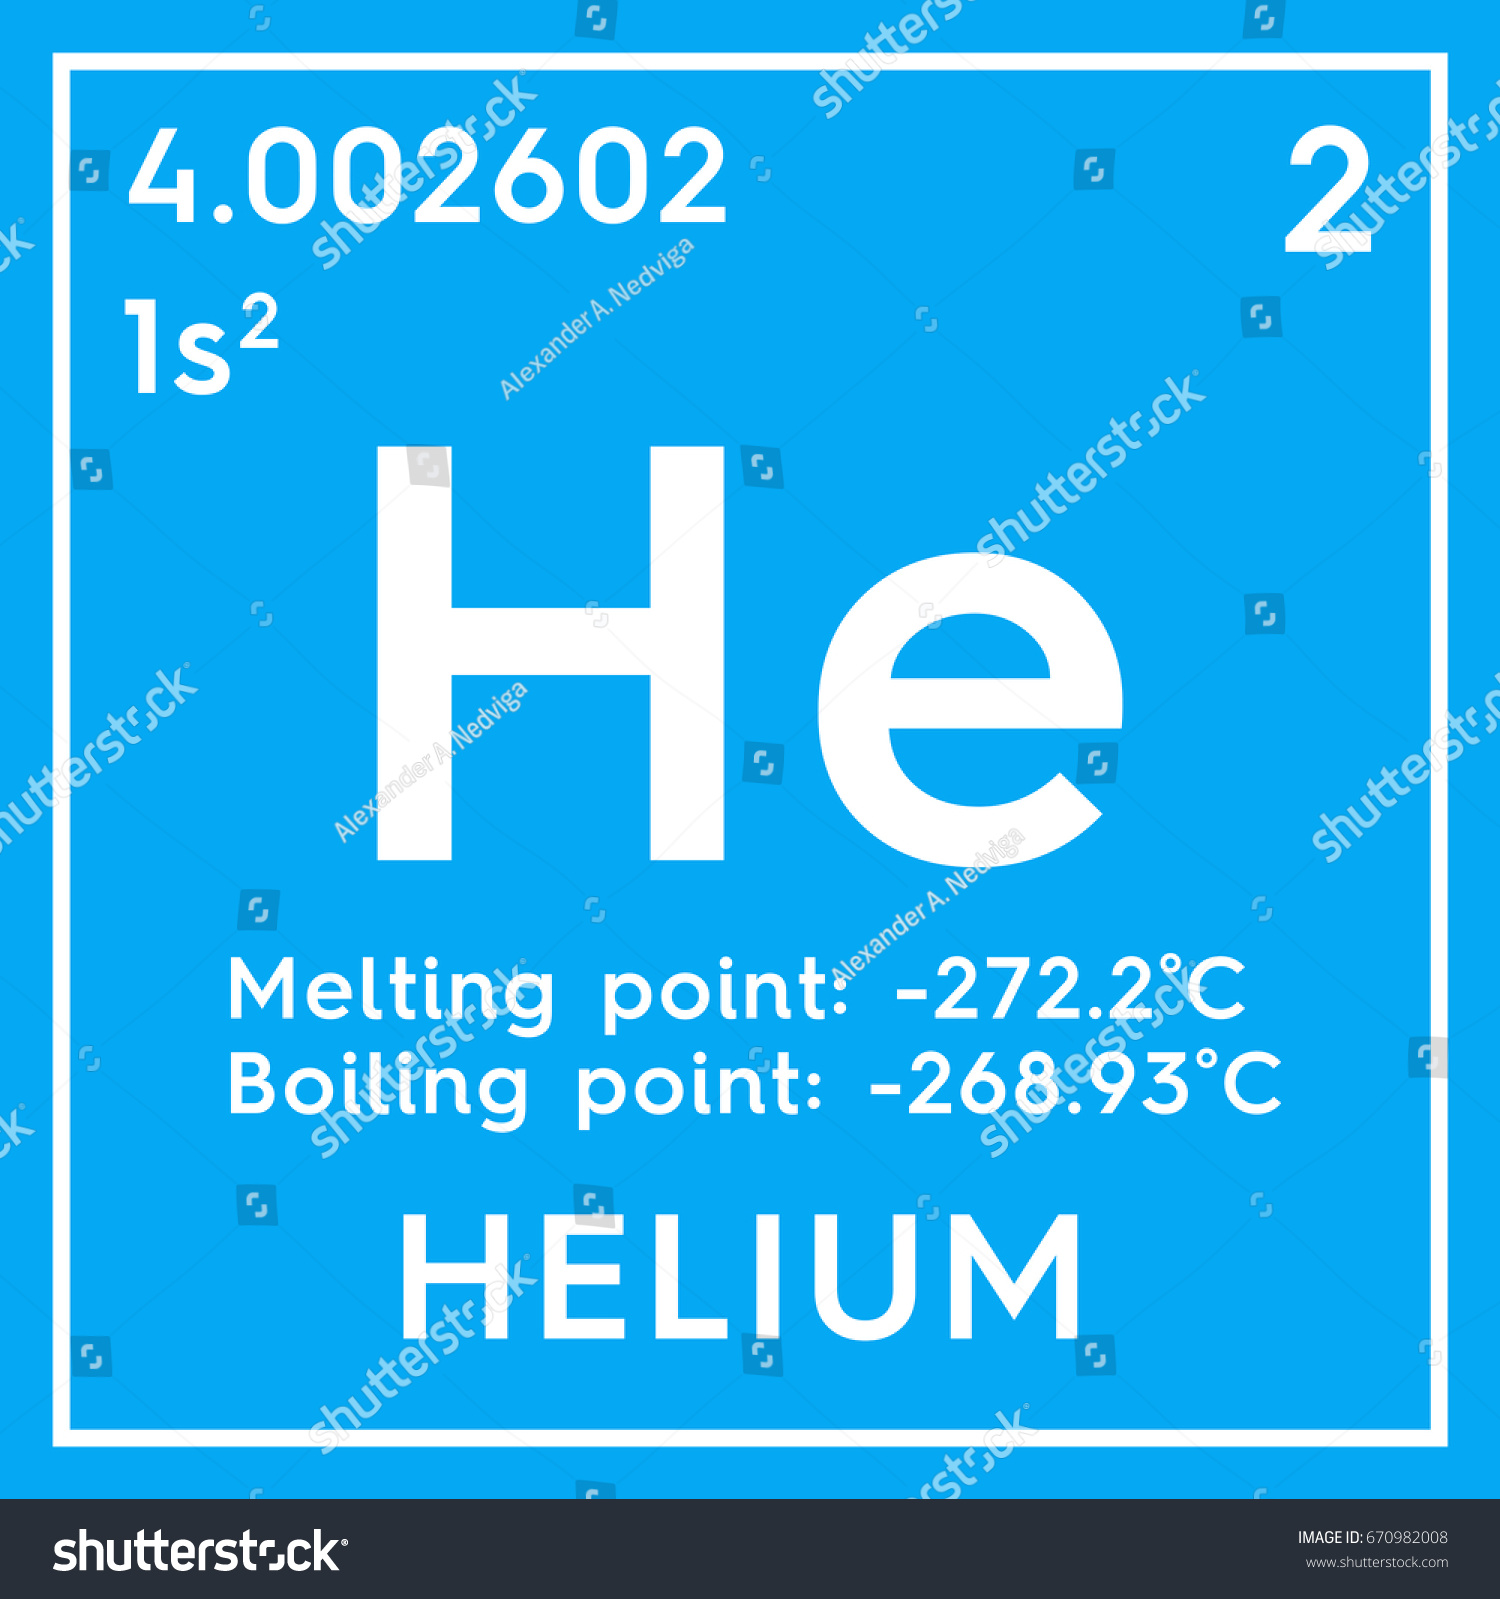 Helium periodic table facts image collections periodic table images helium periodic table facts image collections periodic table images helium periodic table facts choice image periodic gamestrikefo Gallery